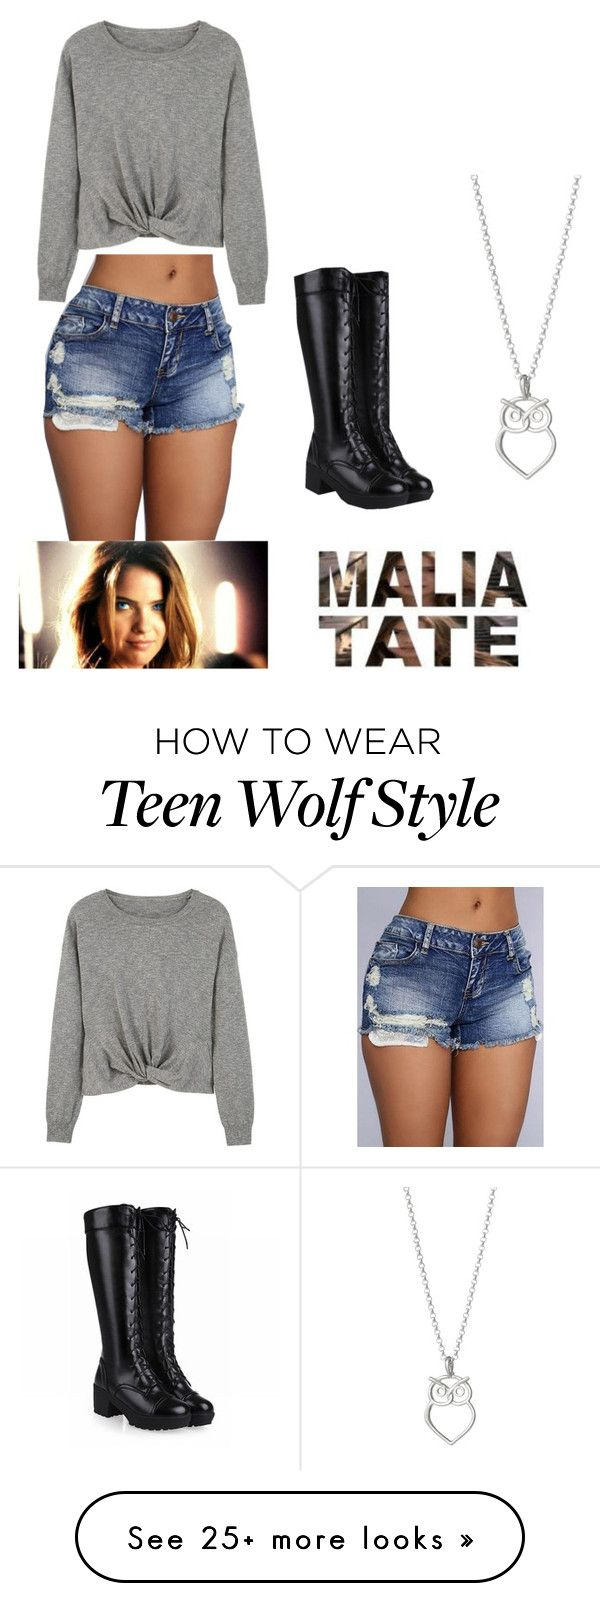 """Get the look:Malia Tate"" by ezikegirl0103 on Polyvore featuring MANGO"